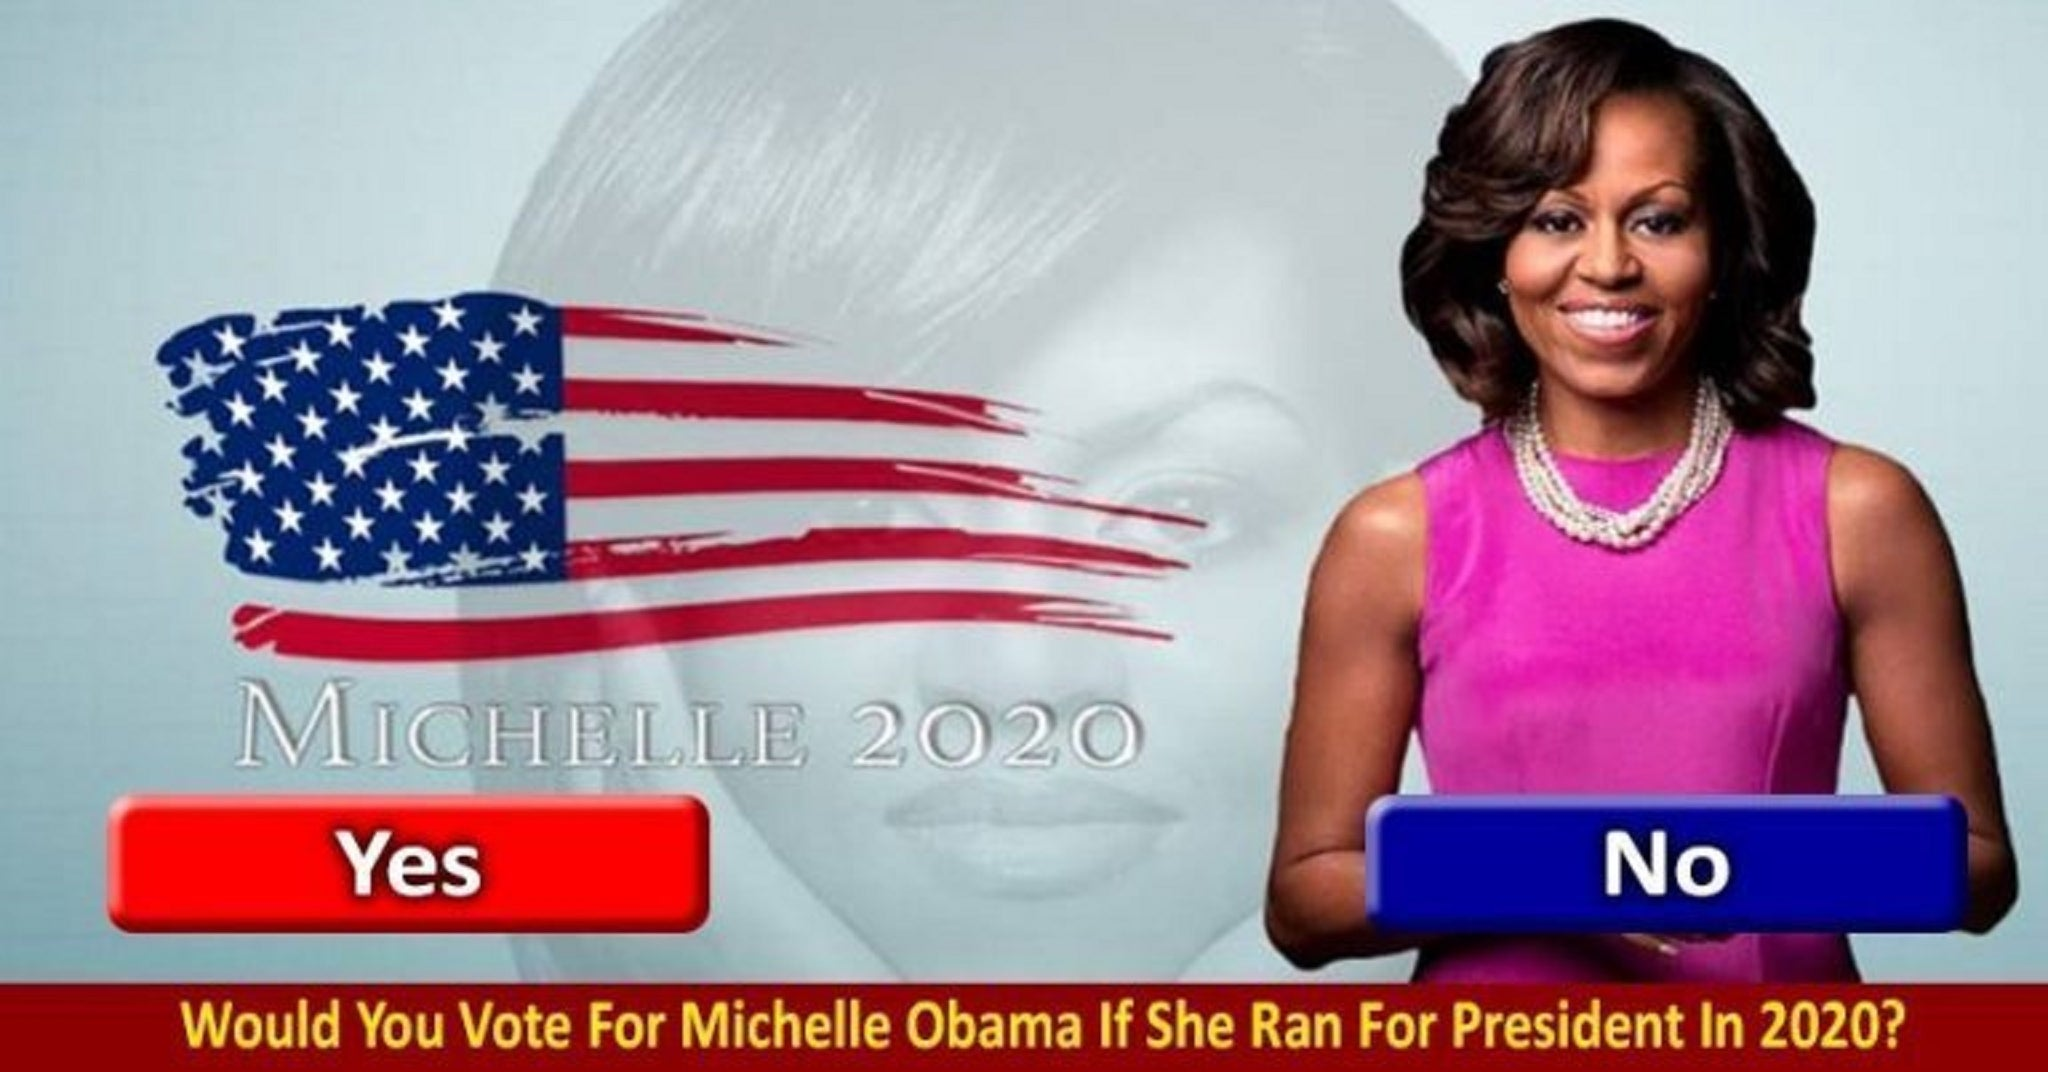 WOULD YOU VOTE FOR MICHELLE OBAMA IF SHE RAN FOR PRESIDENT IN 2020?